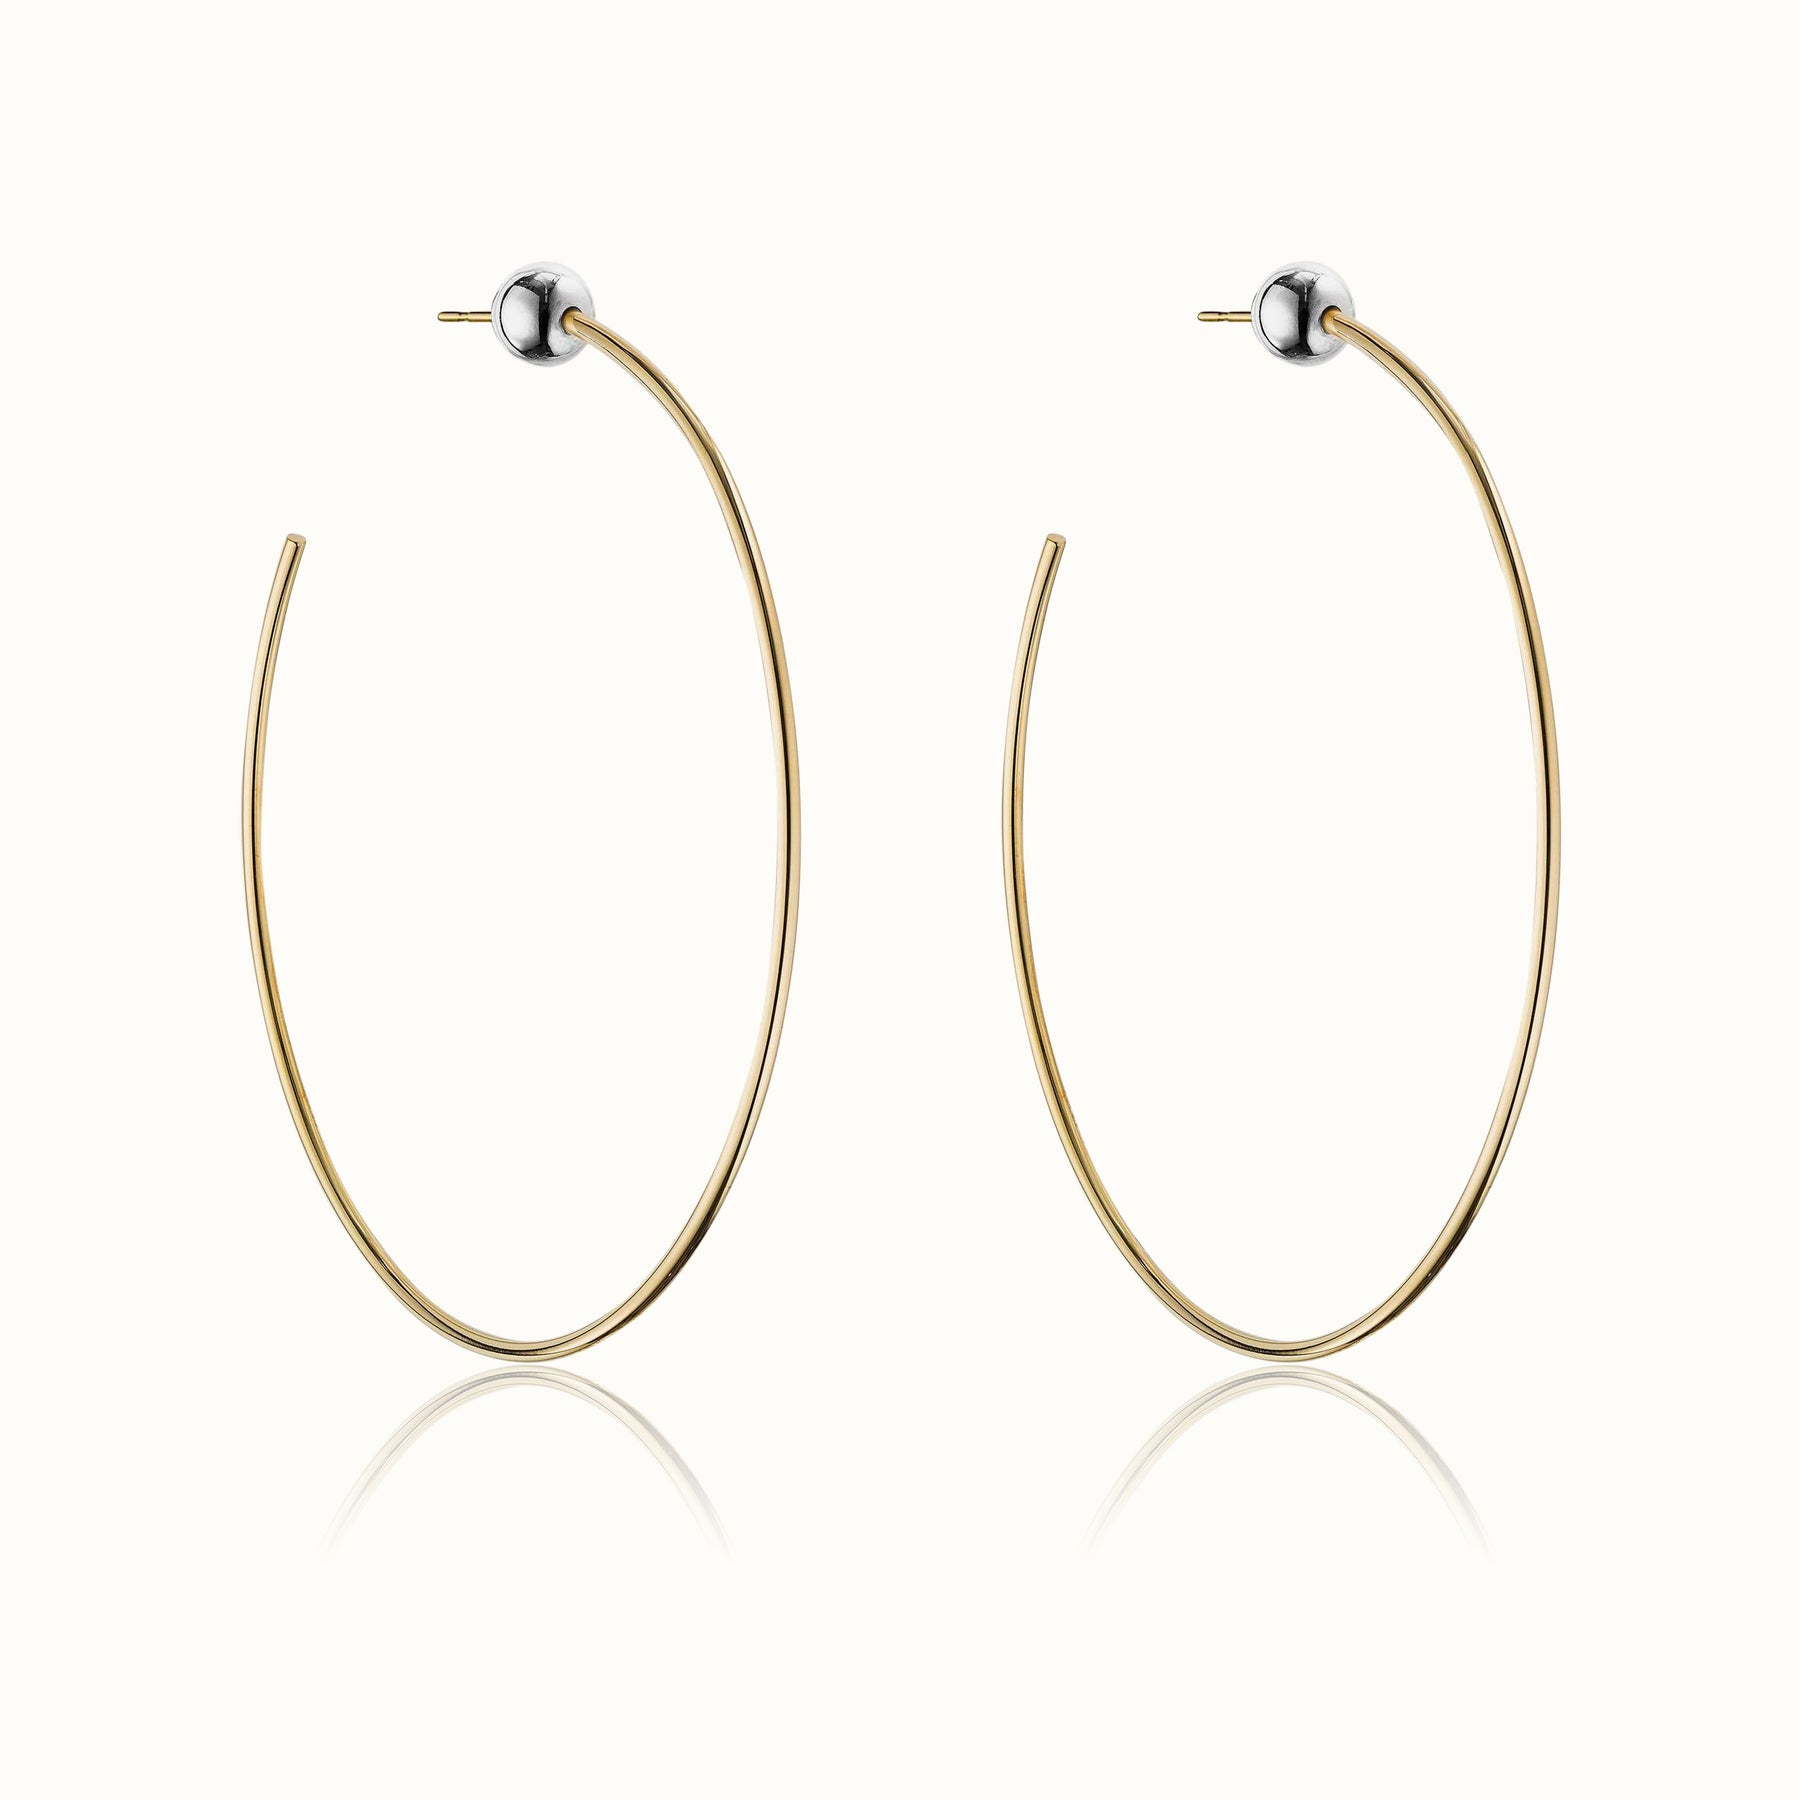 Sfera Two Tone Hoop Earrings 4.0